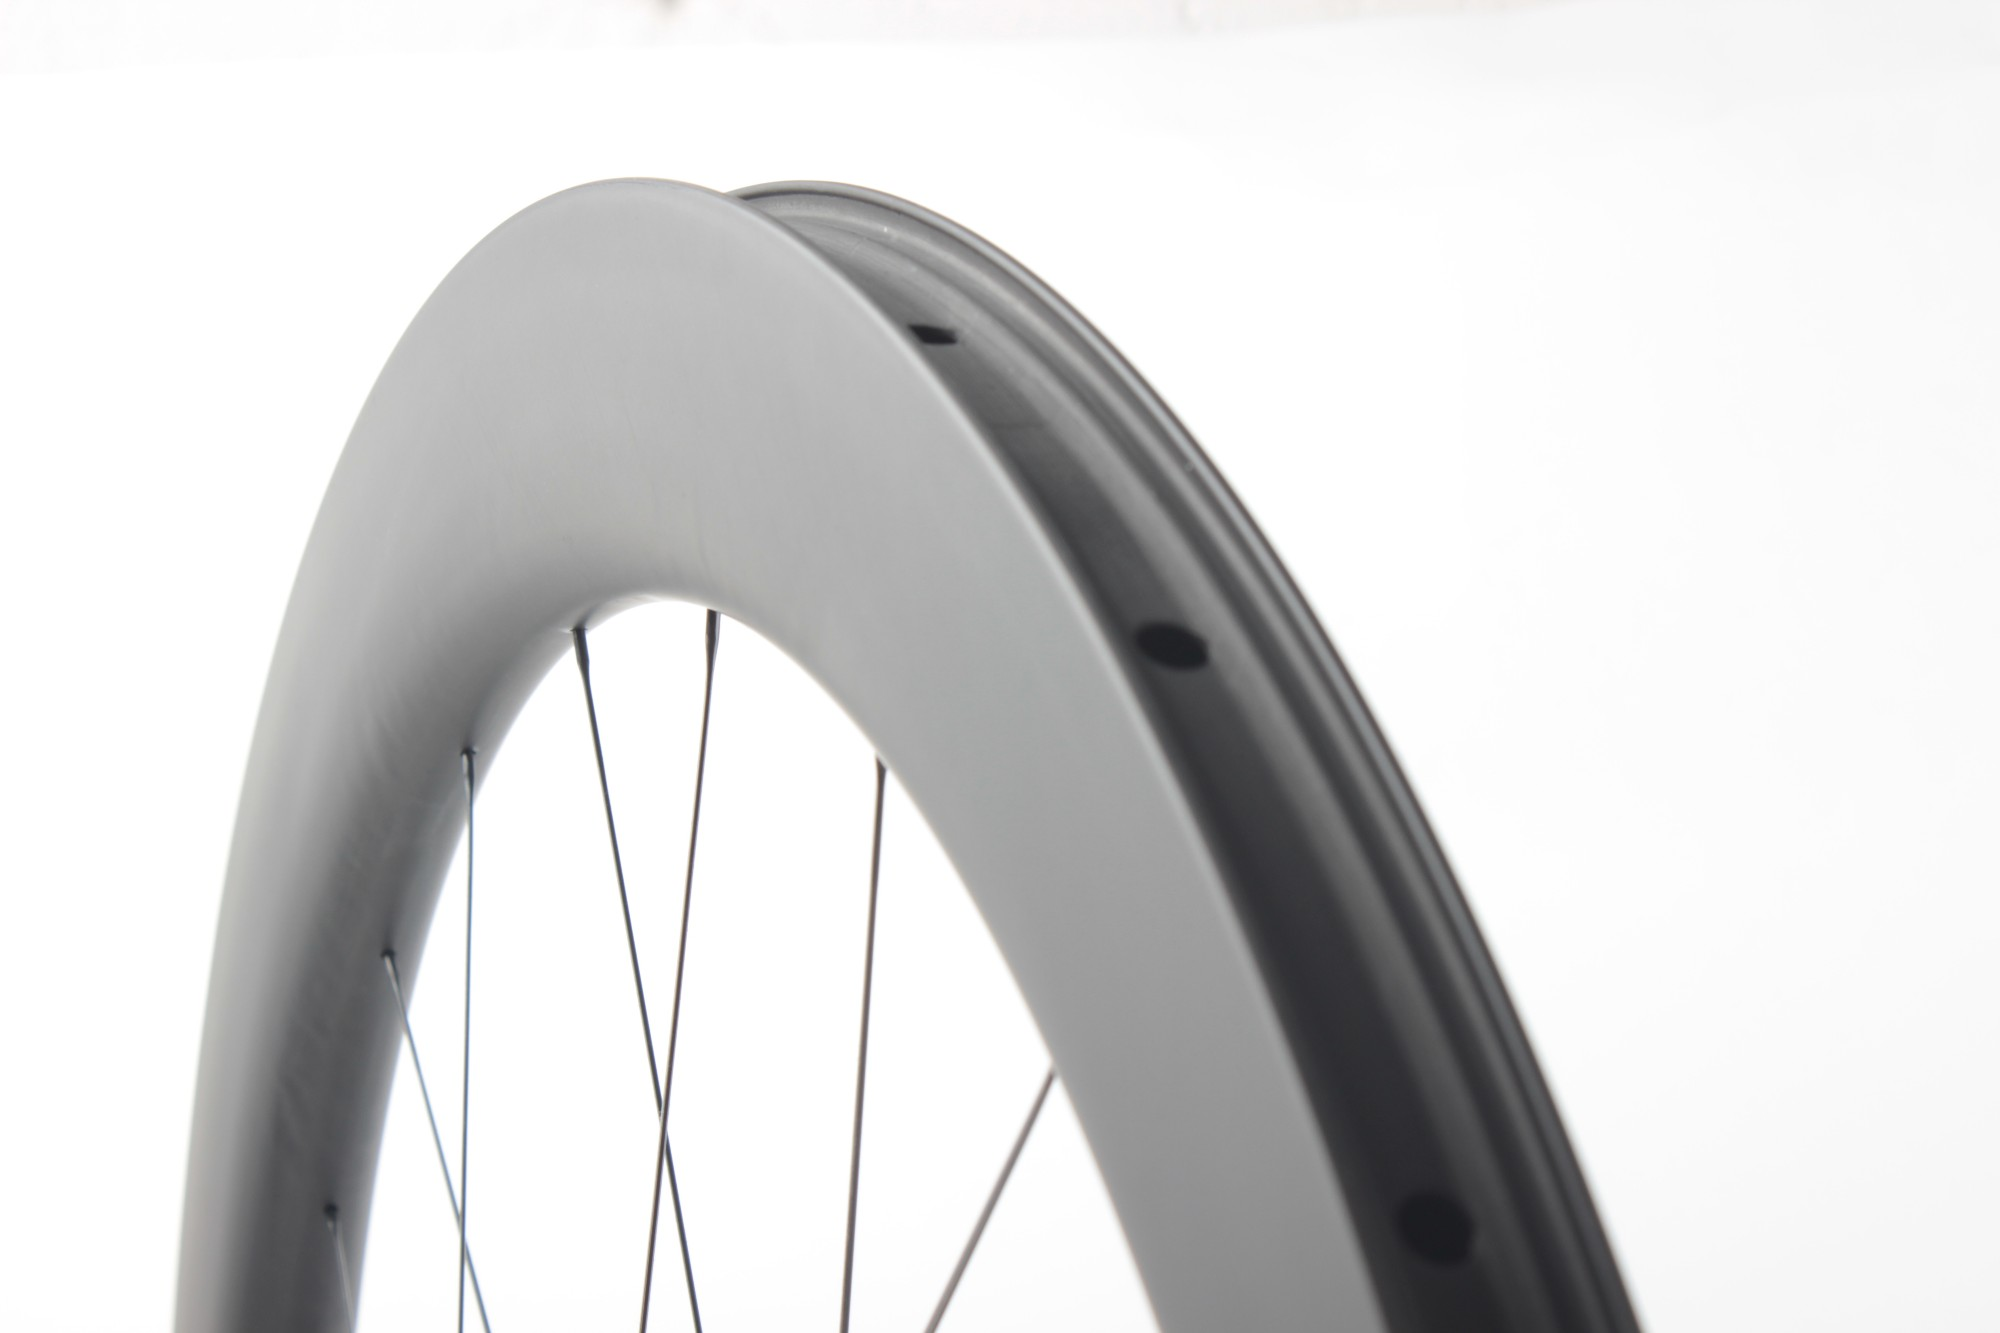 China hand built carbon road bike wheels disc 45mmx28mm tubeless manufacturer Manufacturers, China hand built carbon road bike wheels disc 45mmx28mm tubeless manufacturer Factory, Supply China hand built carbon road bike wheels disc 45mmx28mm tubeless manufacturer